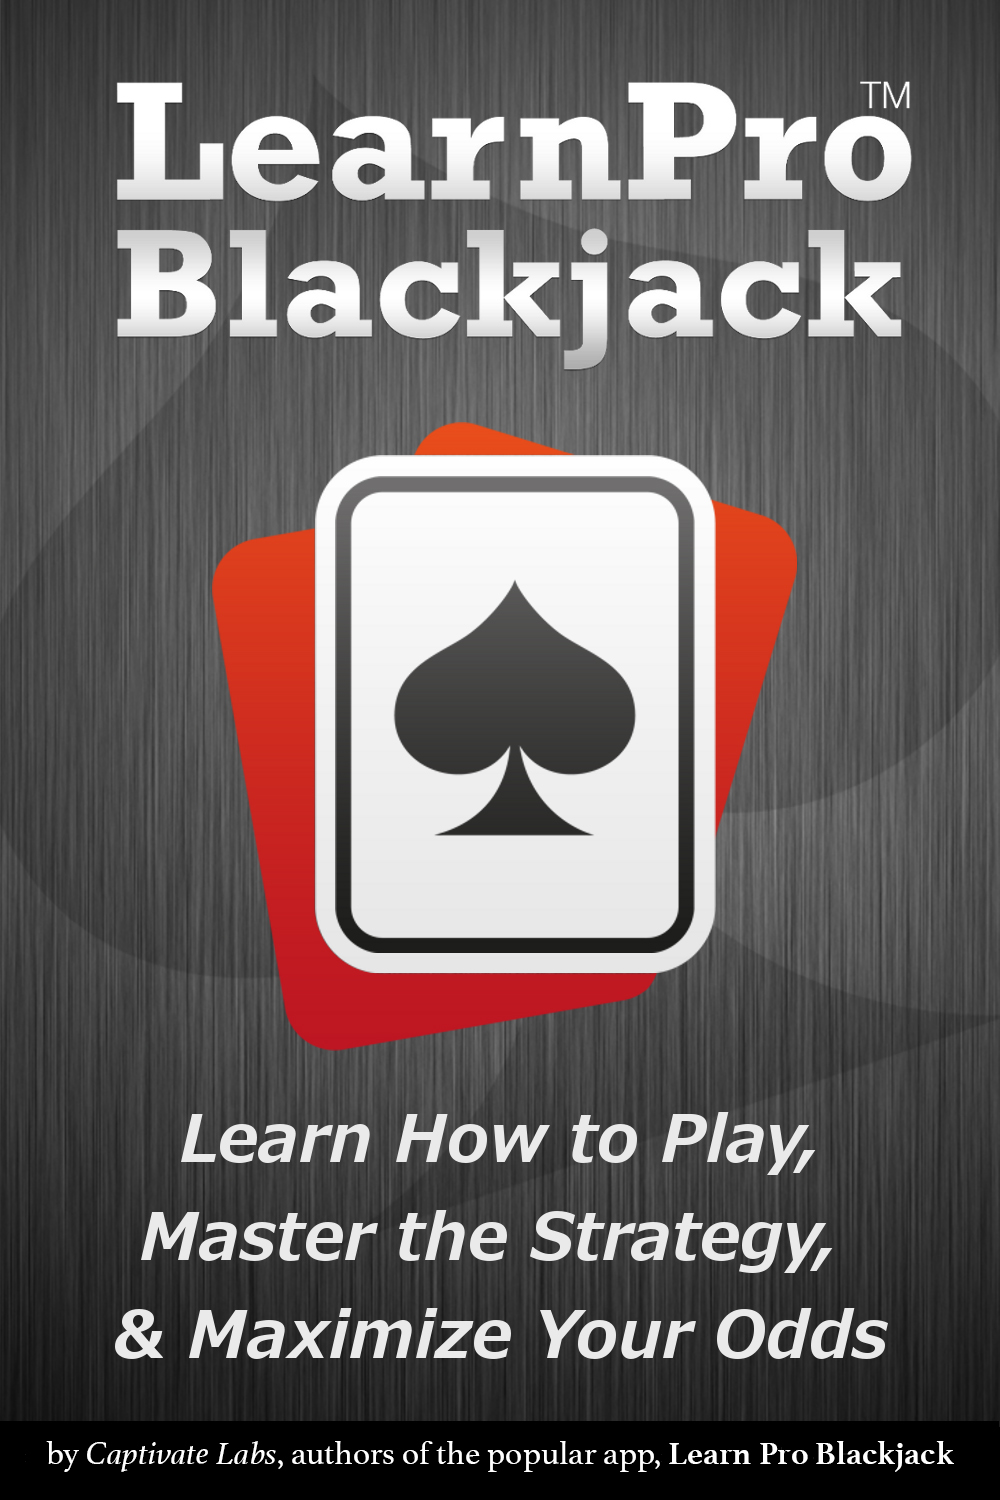 Book Cover for the Learn Pro Blackjack Book